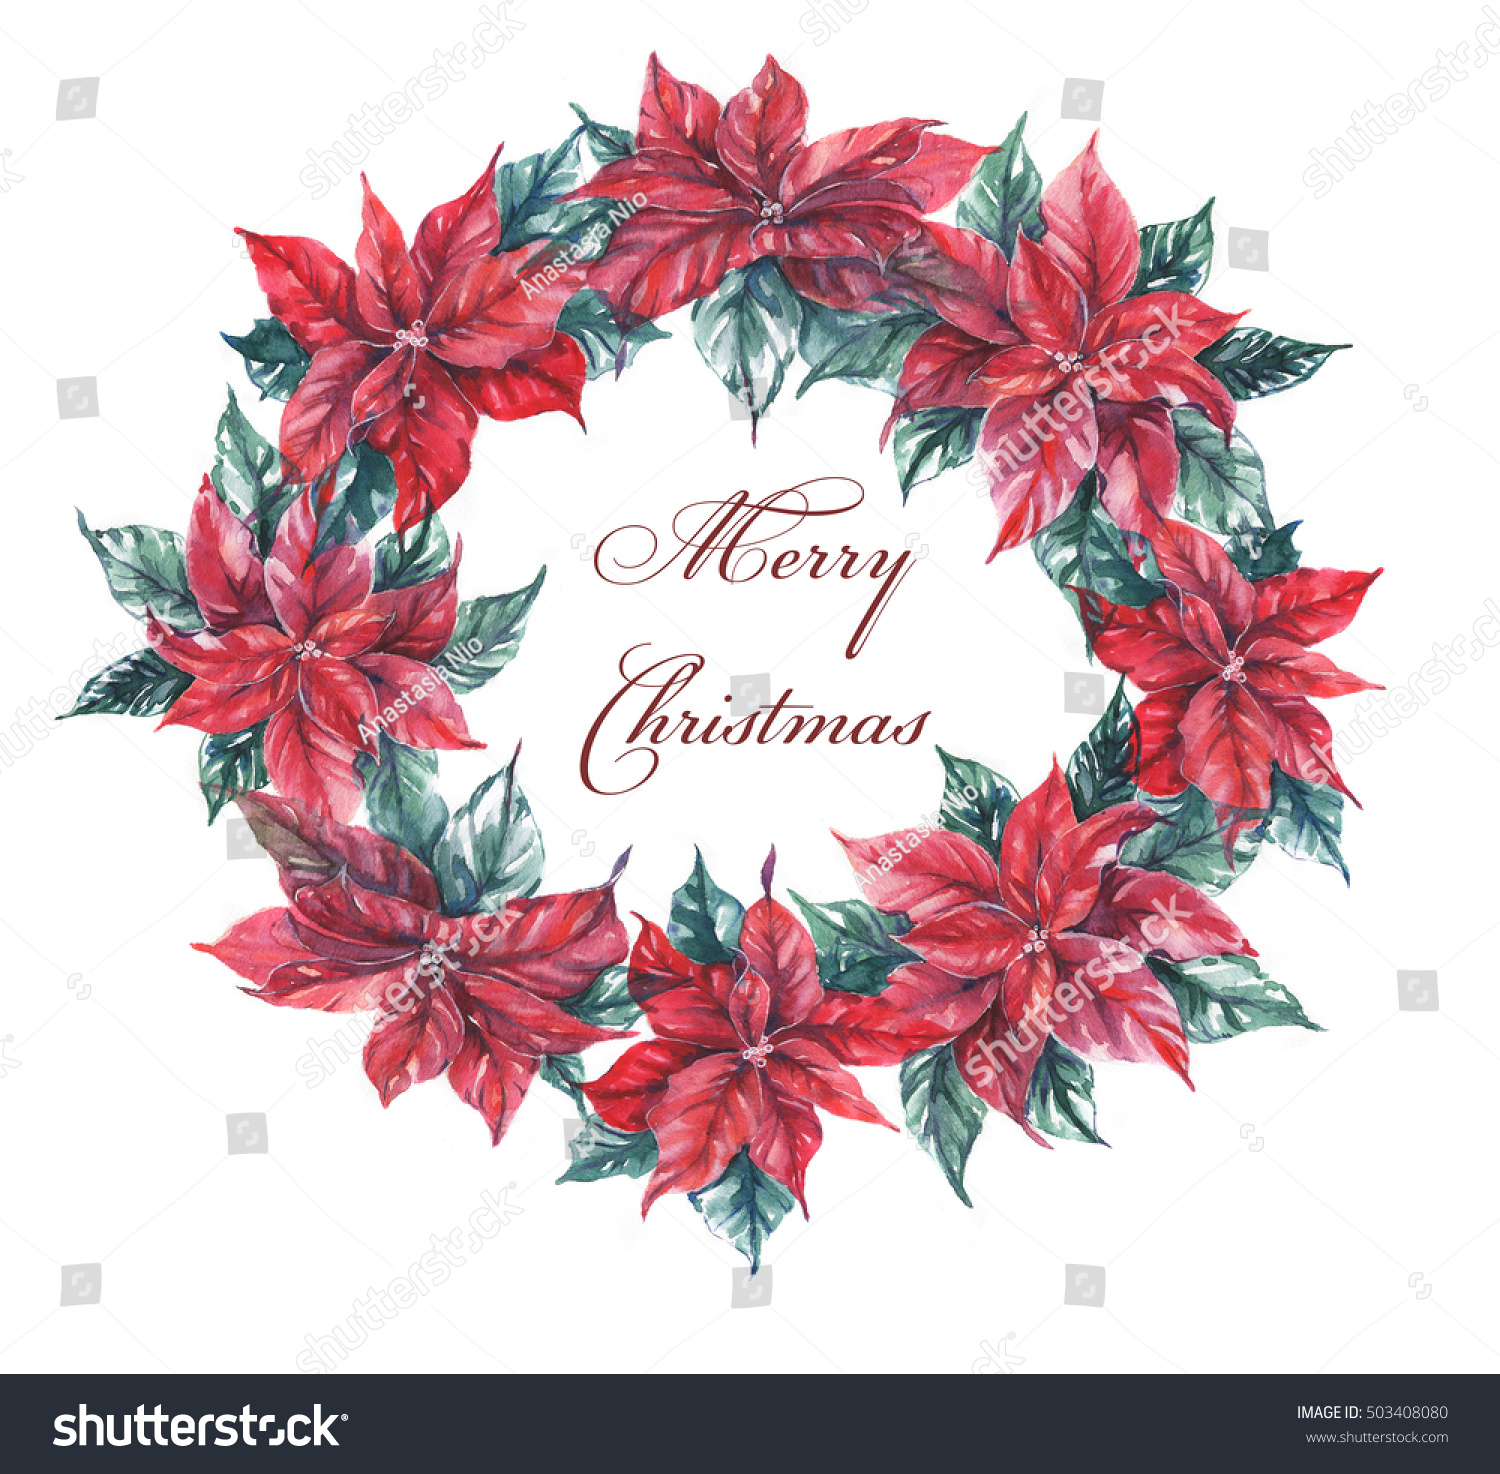 Happy New Year Merry Christmas Greeting Stock Illustration 503408080